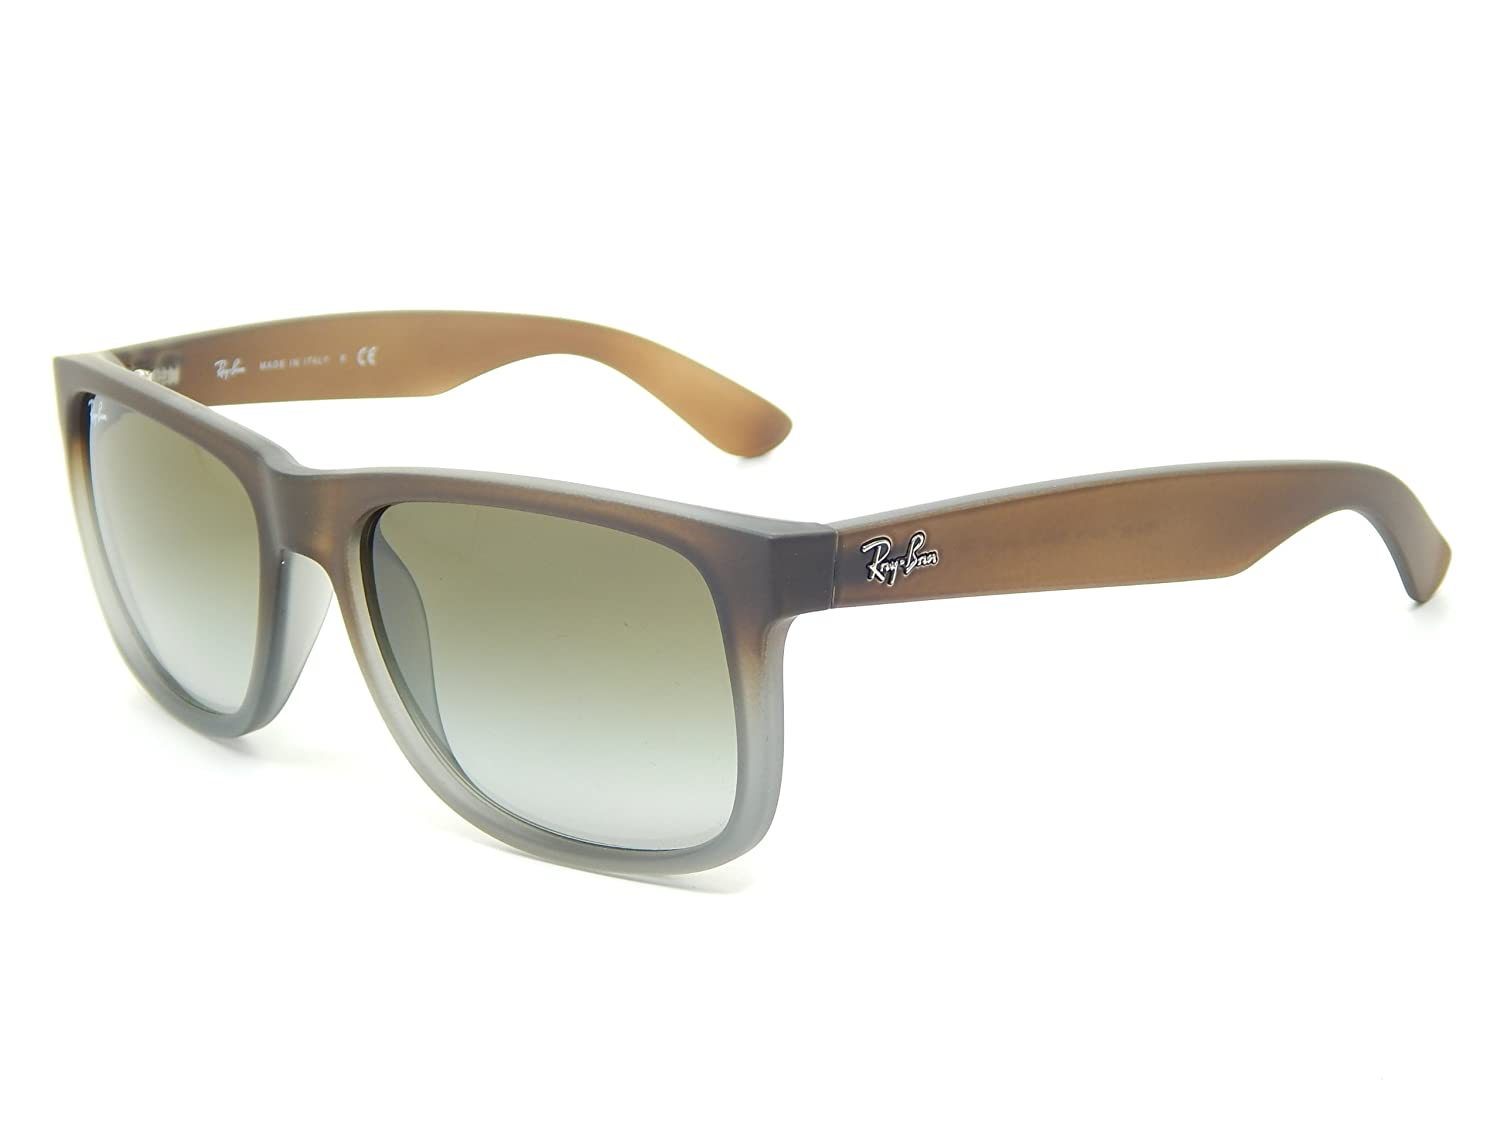 6779ce3ac6 Amazon.com  Rayban Sunglasses Justin RB4165 854 7Z RUBBER BROWN ON GREY  GREEN GRADIENT  Shoes